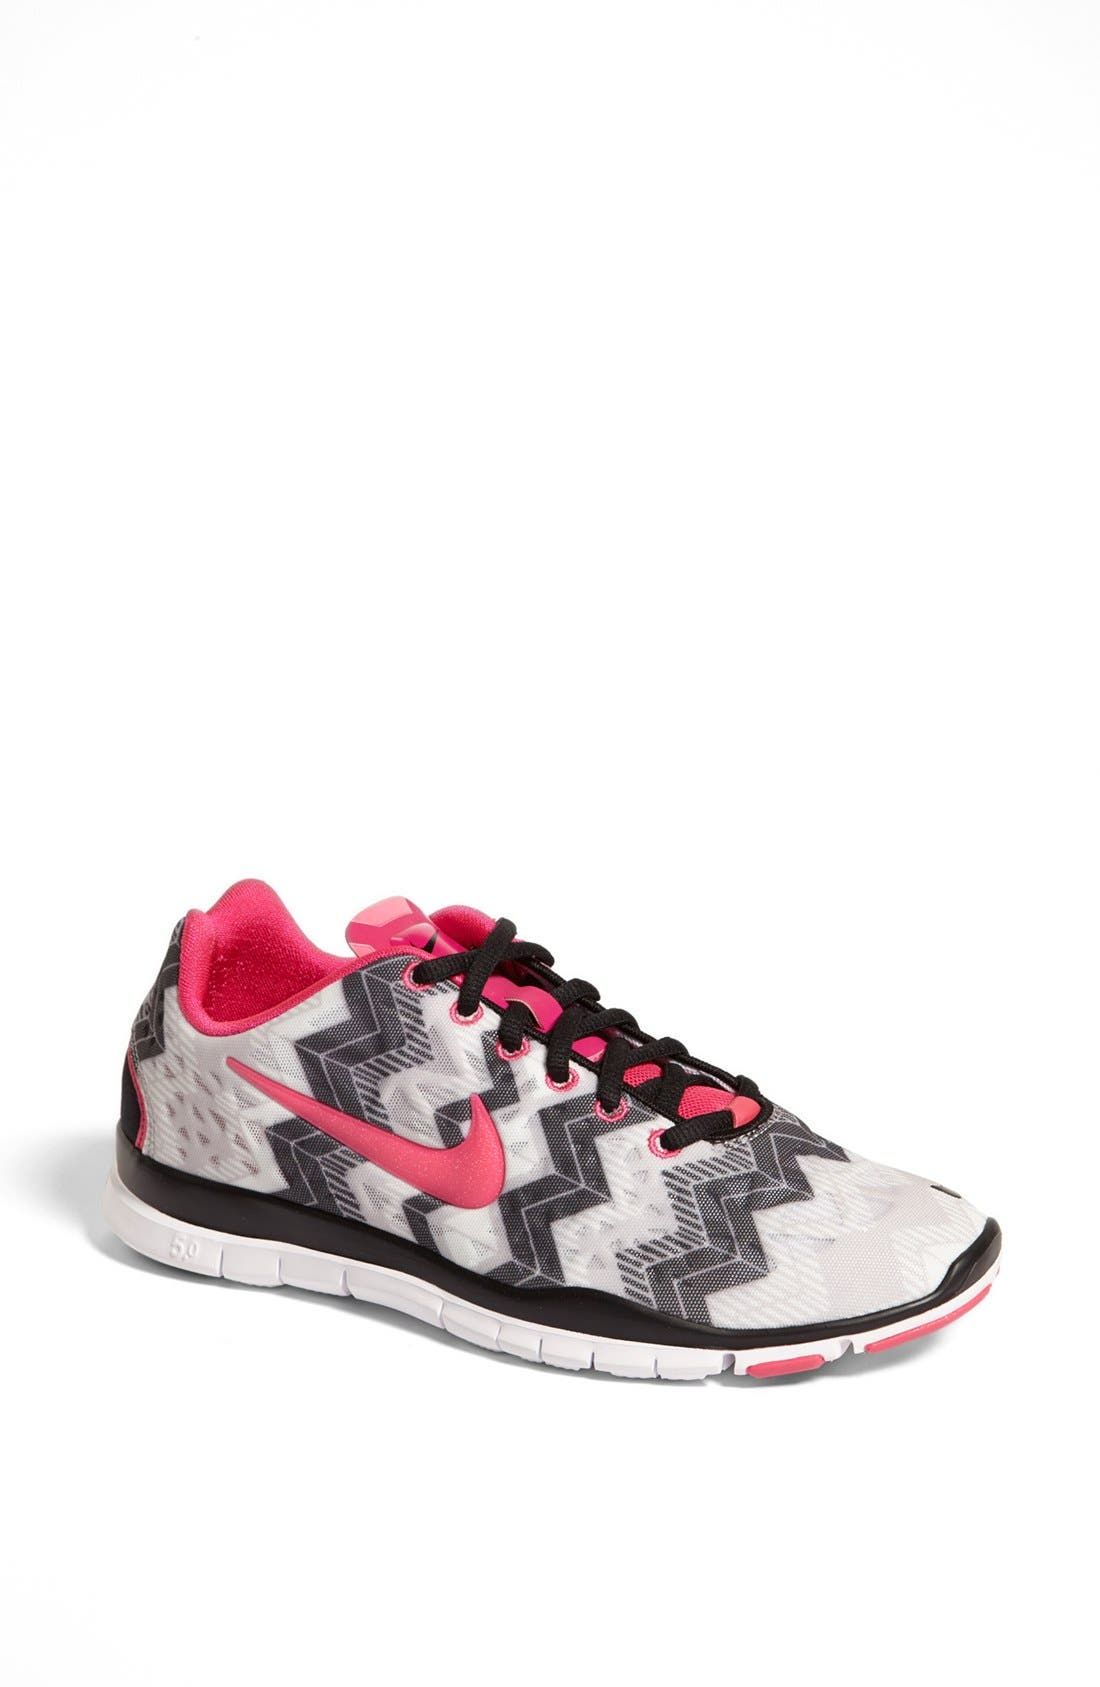 Main Image - Nike 'Free TR Fit 3 Print' Training Shoe (Women)